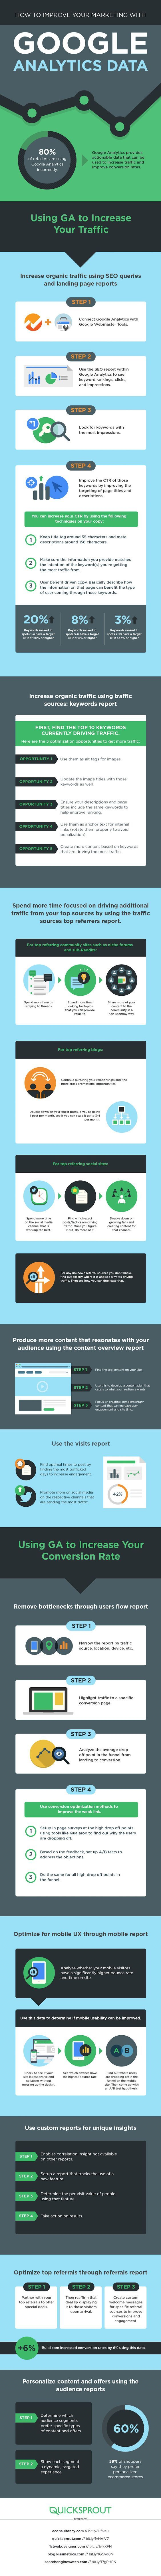 How can you use Google Analytics to improve your blog's performance and traffic? Check out this infographic: Improving Your Blog with Google Analytics.